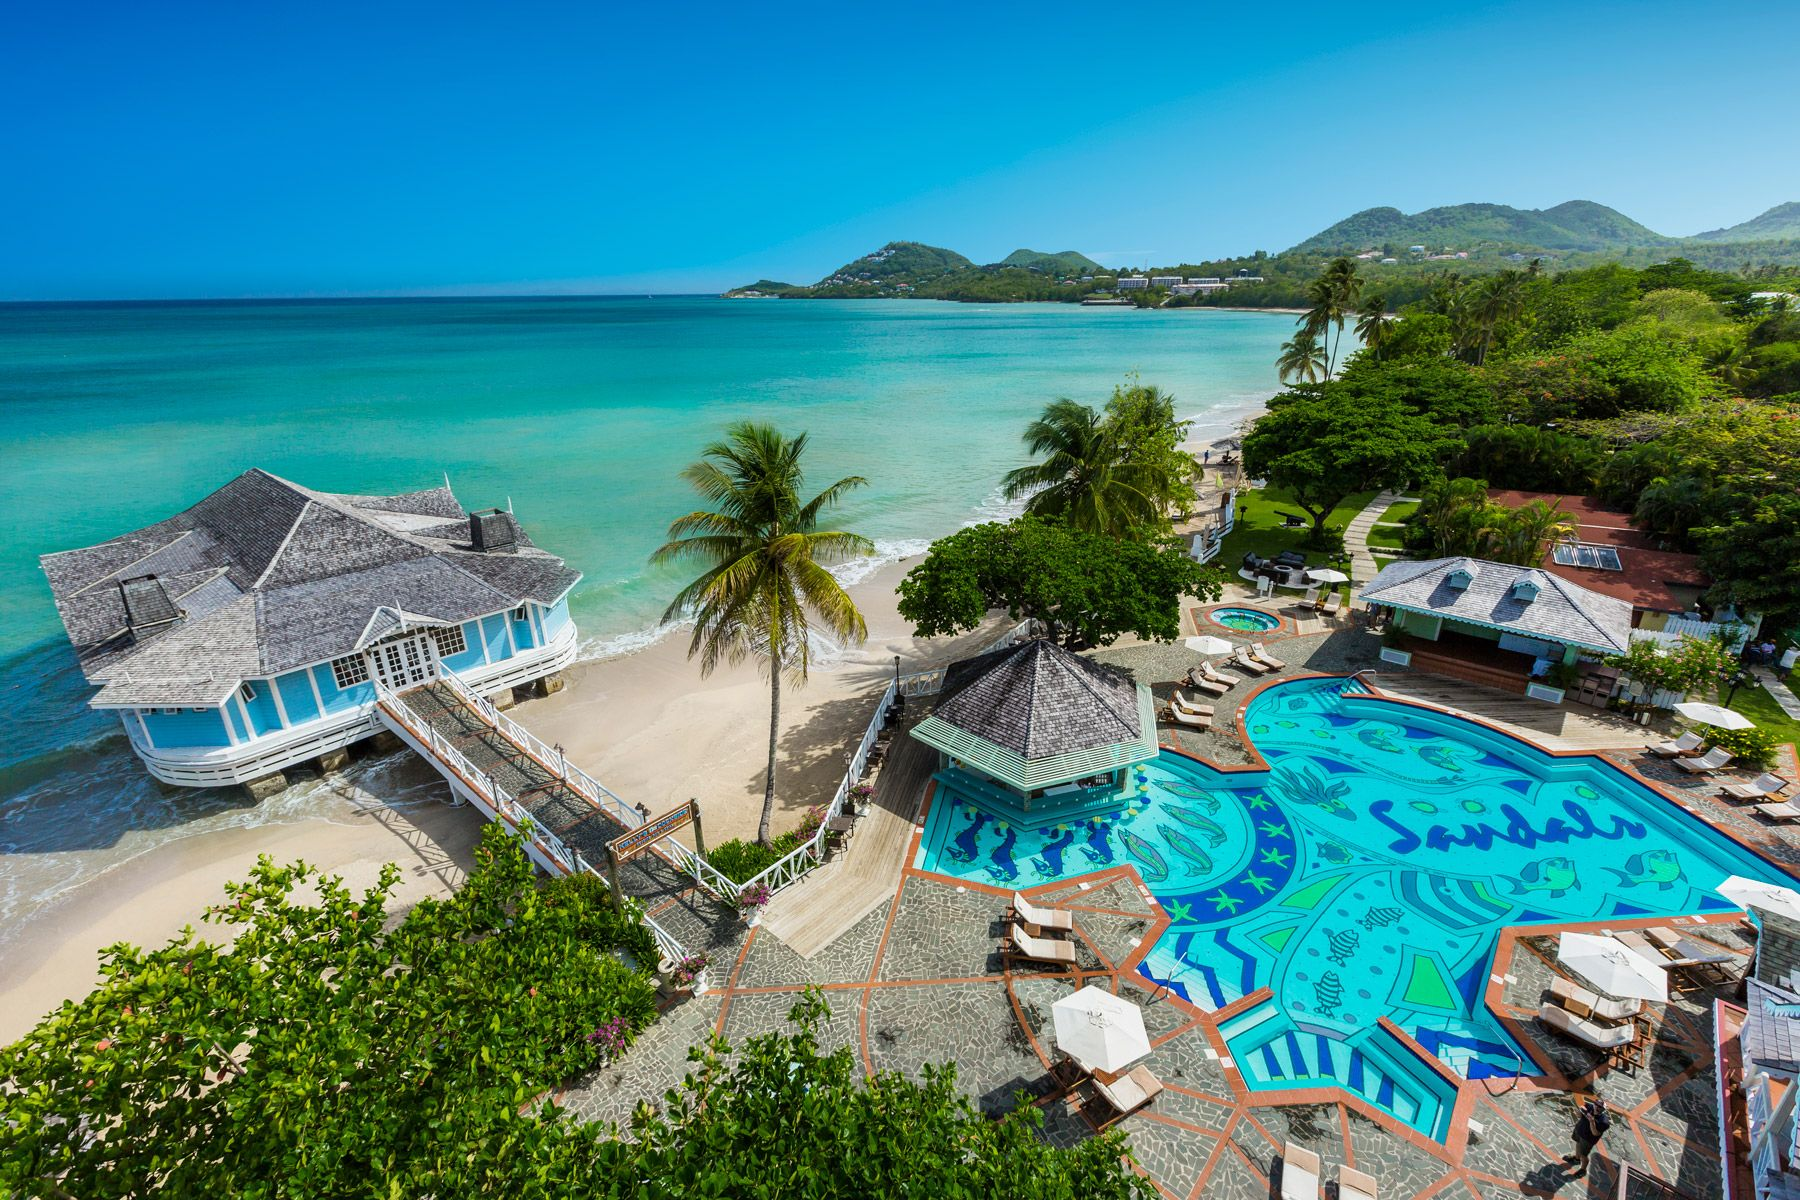 sandals halcyon beach resort overview